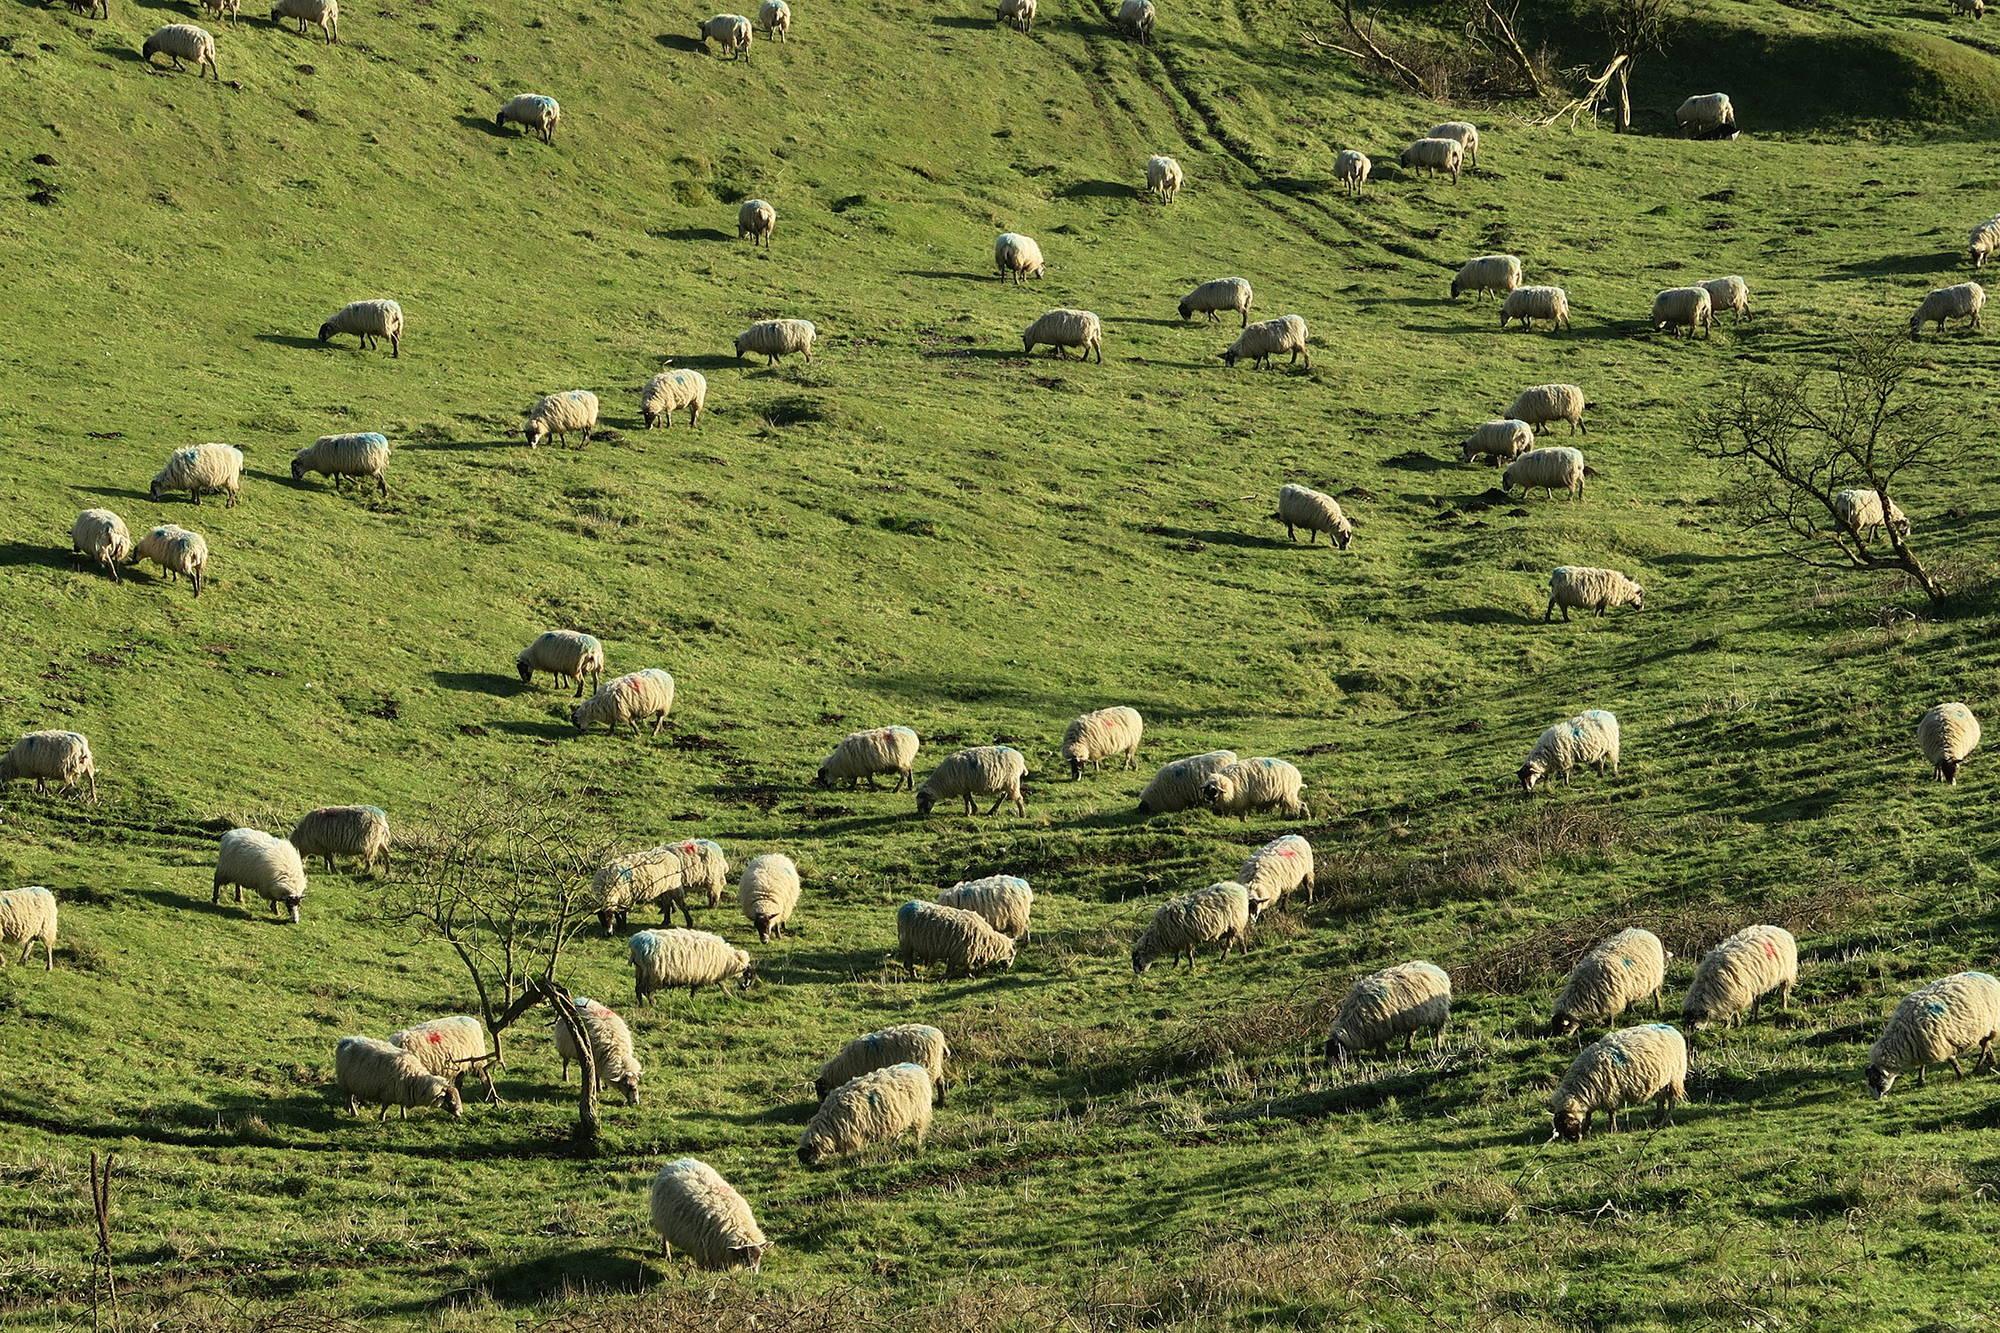 A heard of sheep with full wool coats grazing on a lush  grass field